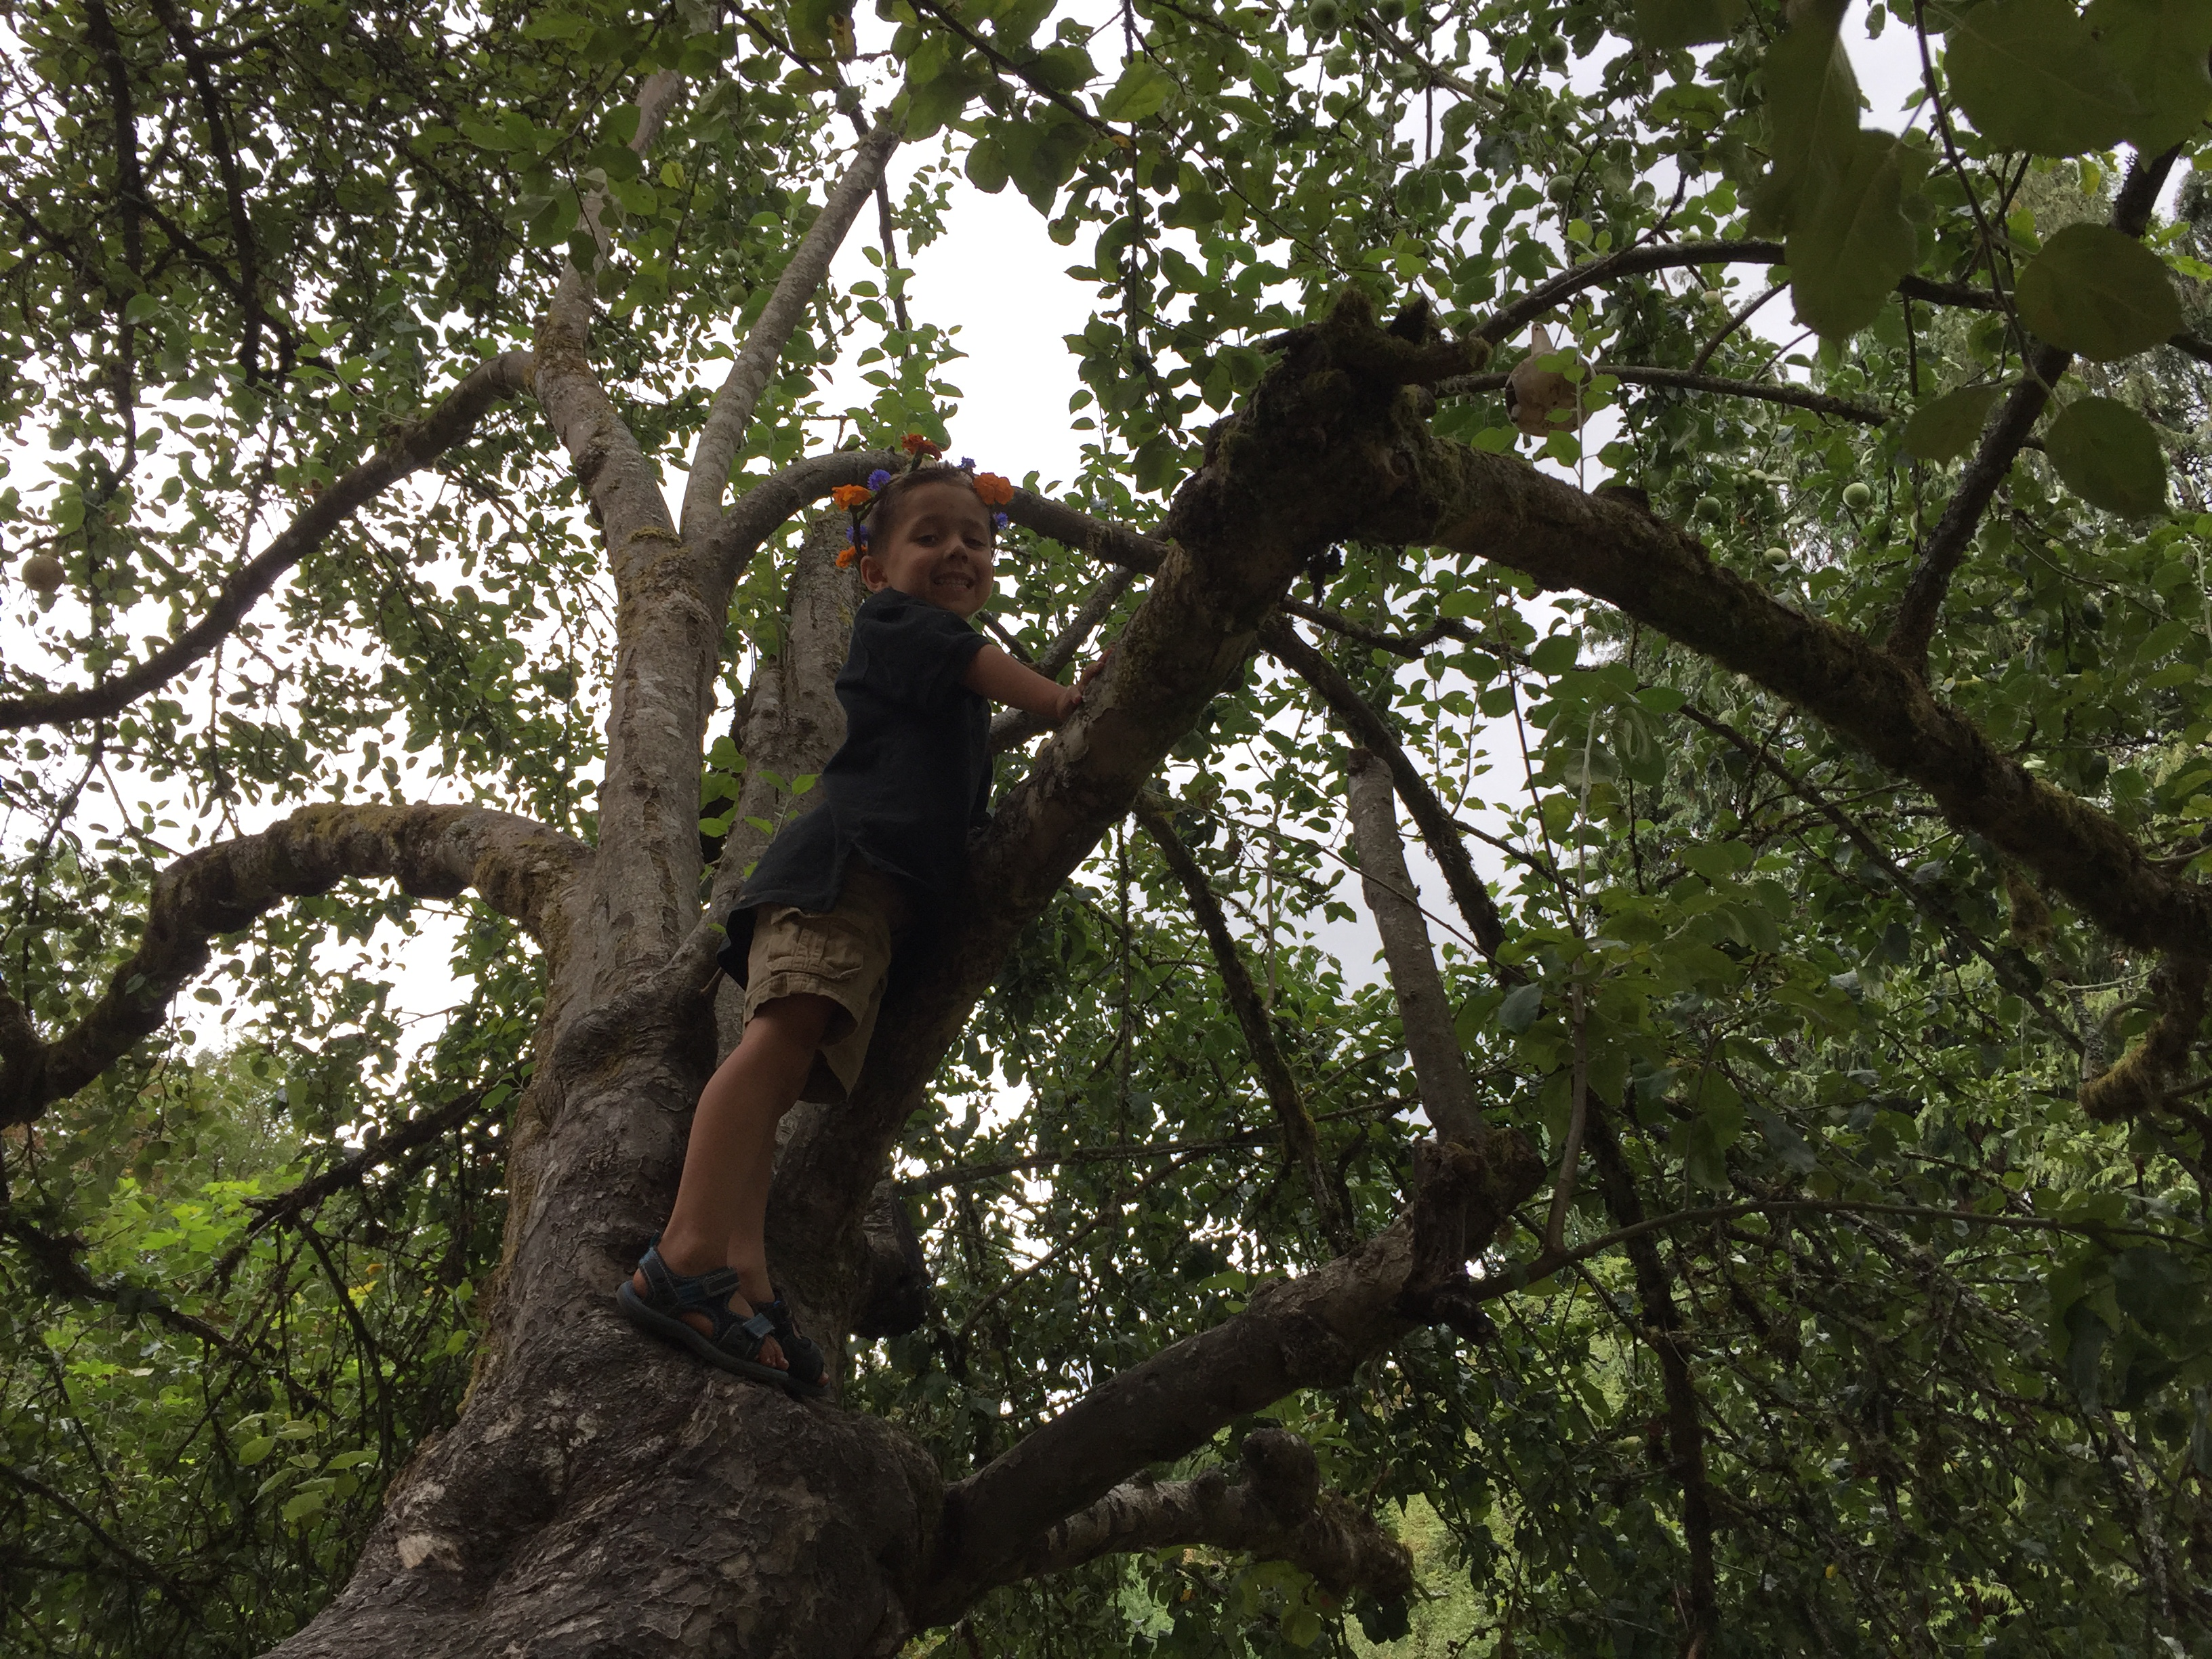 Photo: Young boy in flower crown climbing a tree